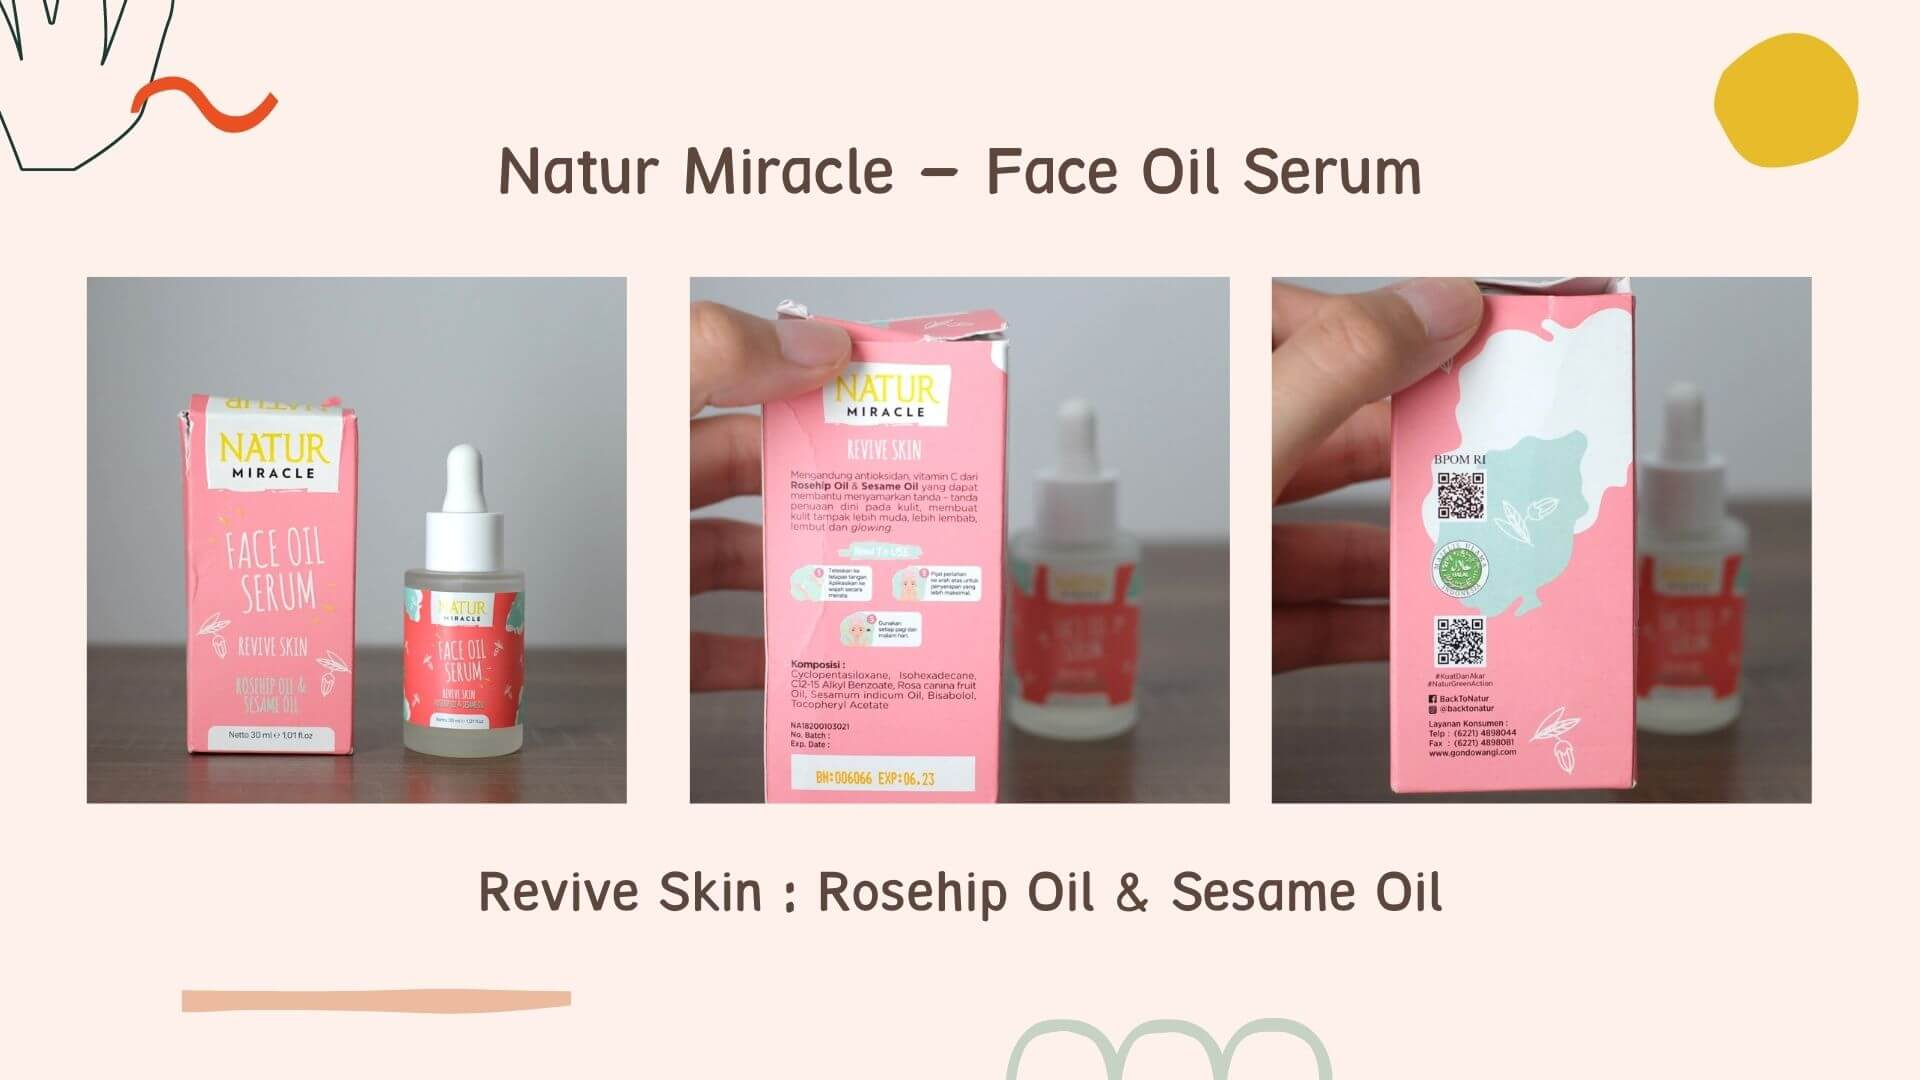 Natur Miracle Face Oil